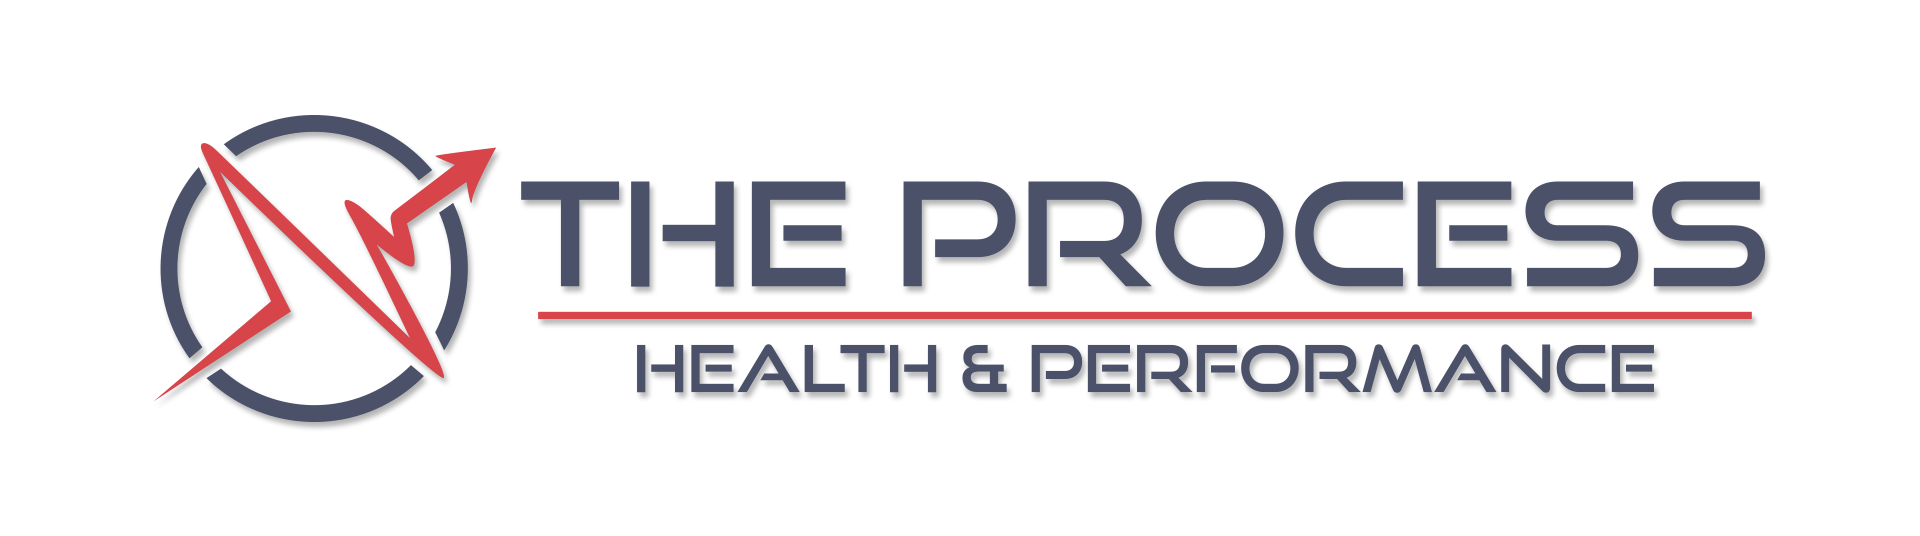 The Process – Health & Performance